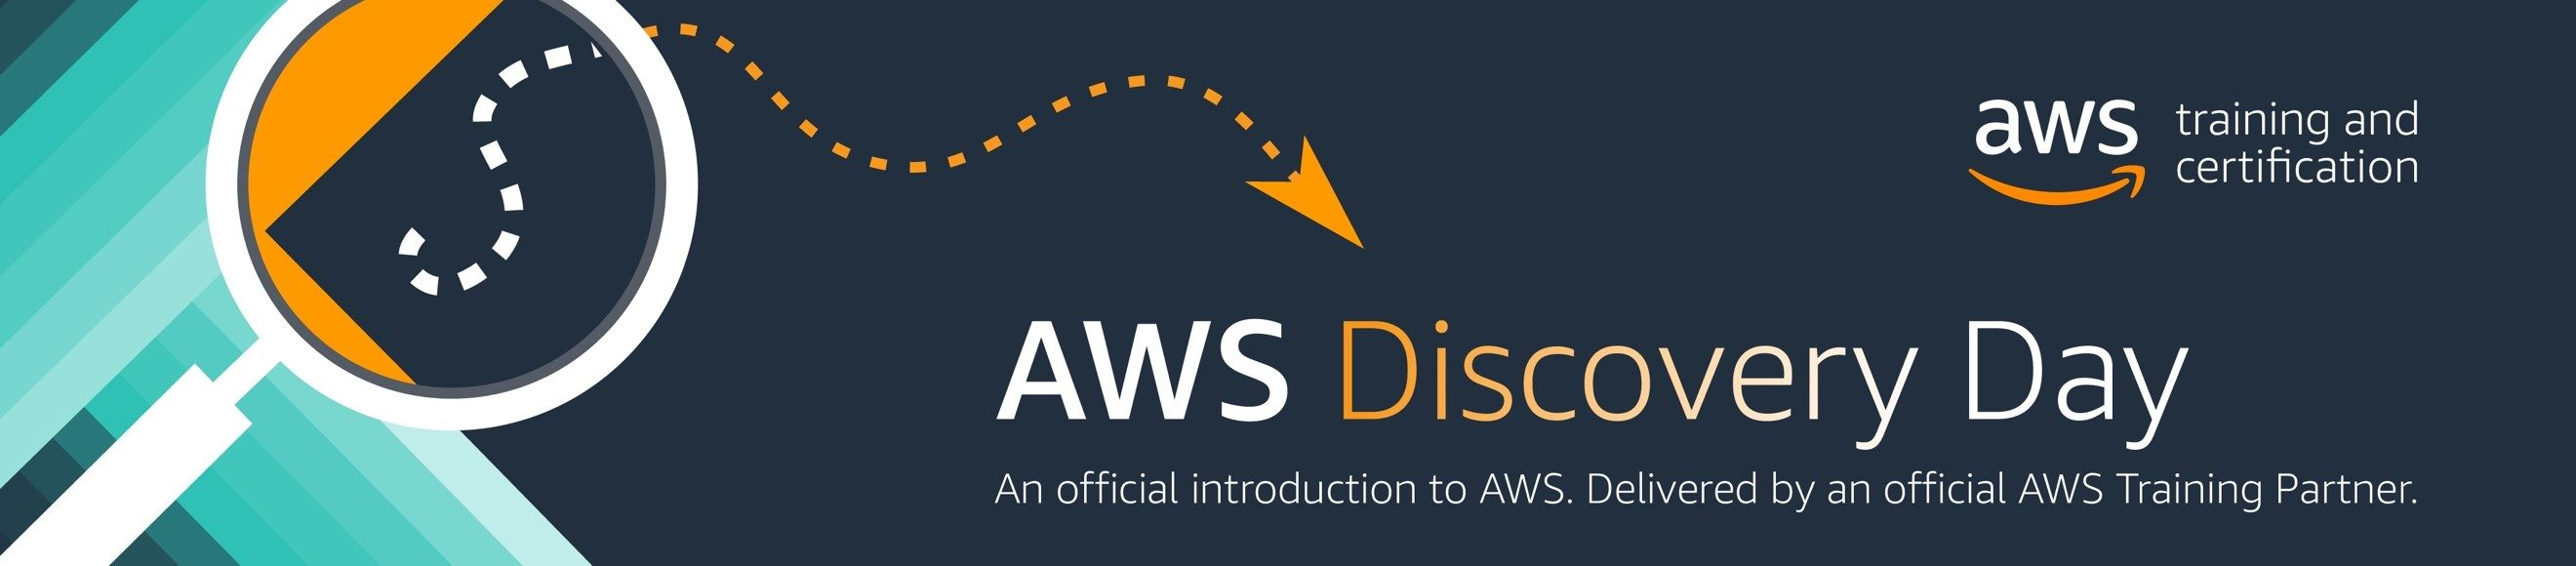 AWS Discovery Day